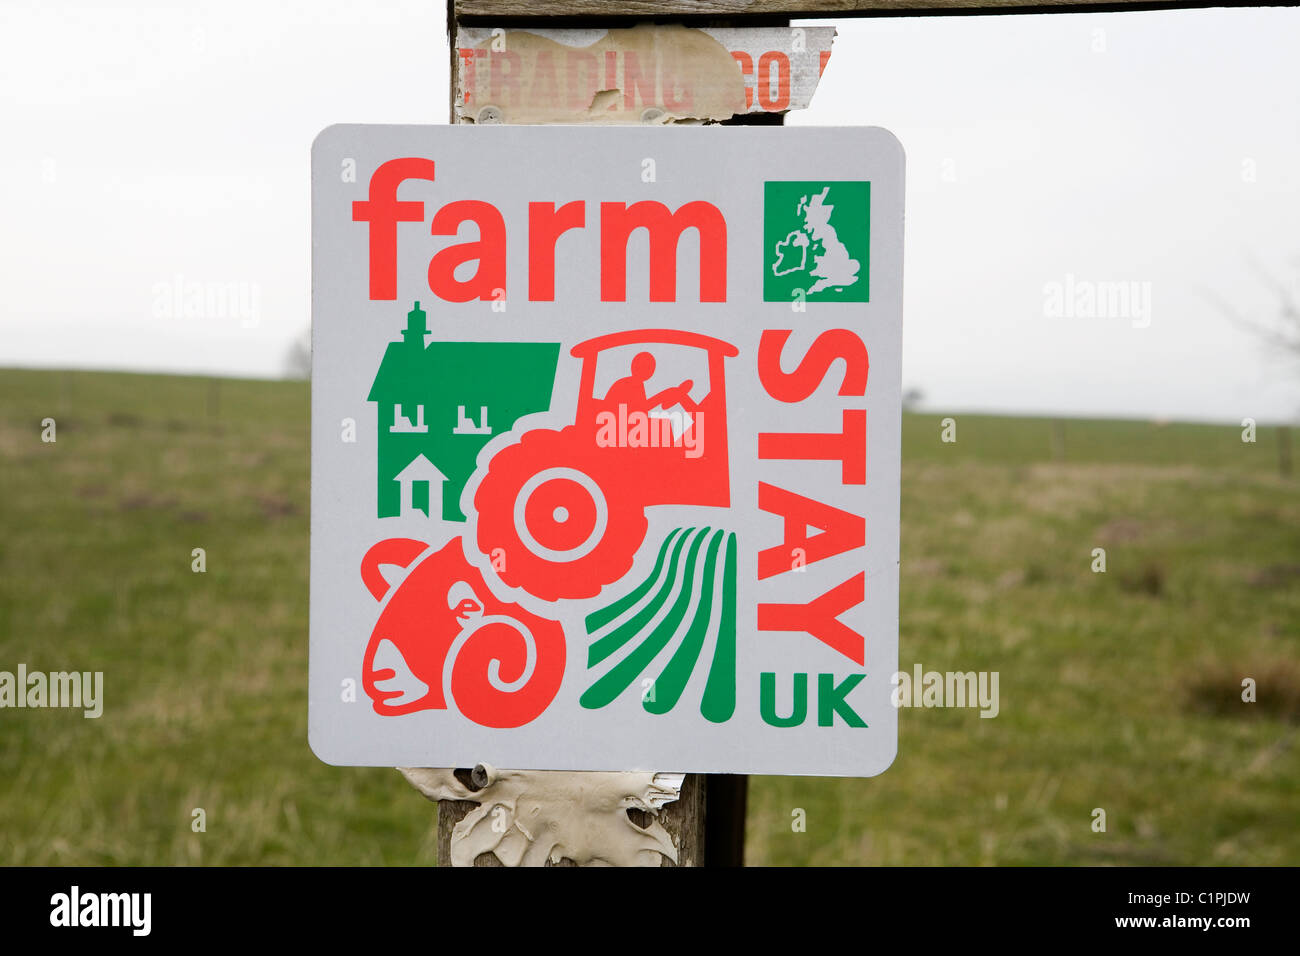 England, Derbyshire, Peak District National Park, sign advertising accommodation on farm - Stock Image